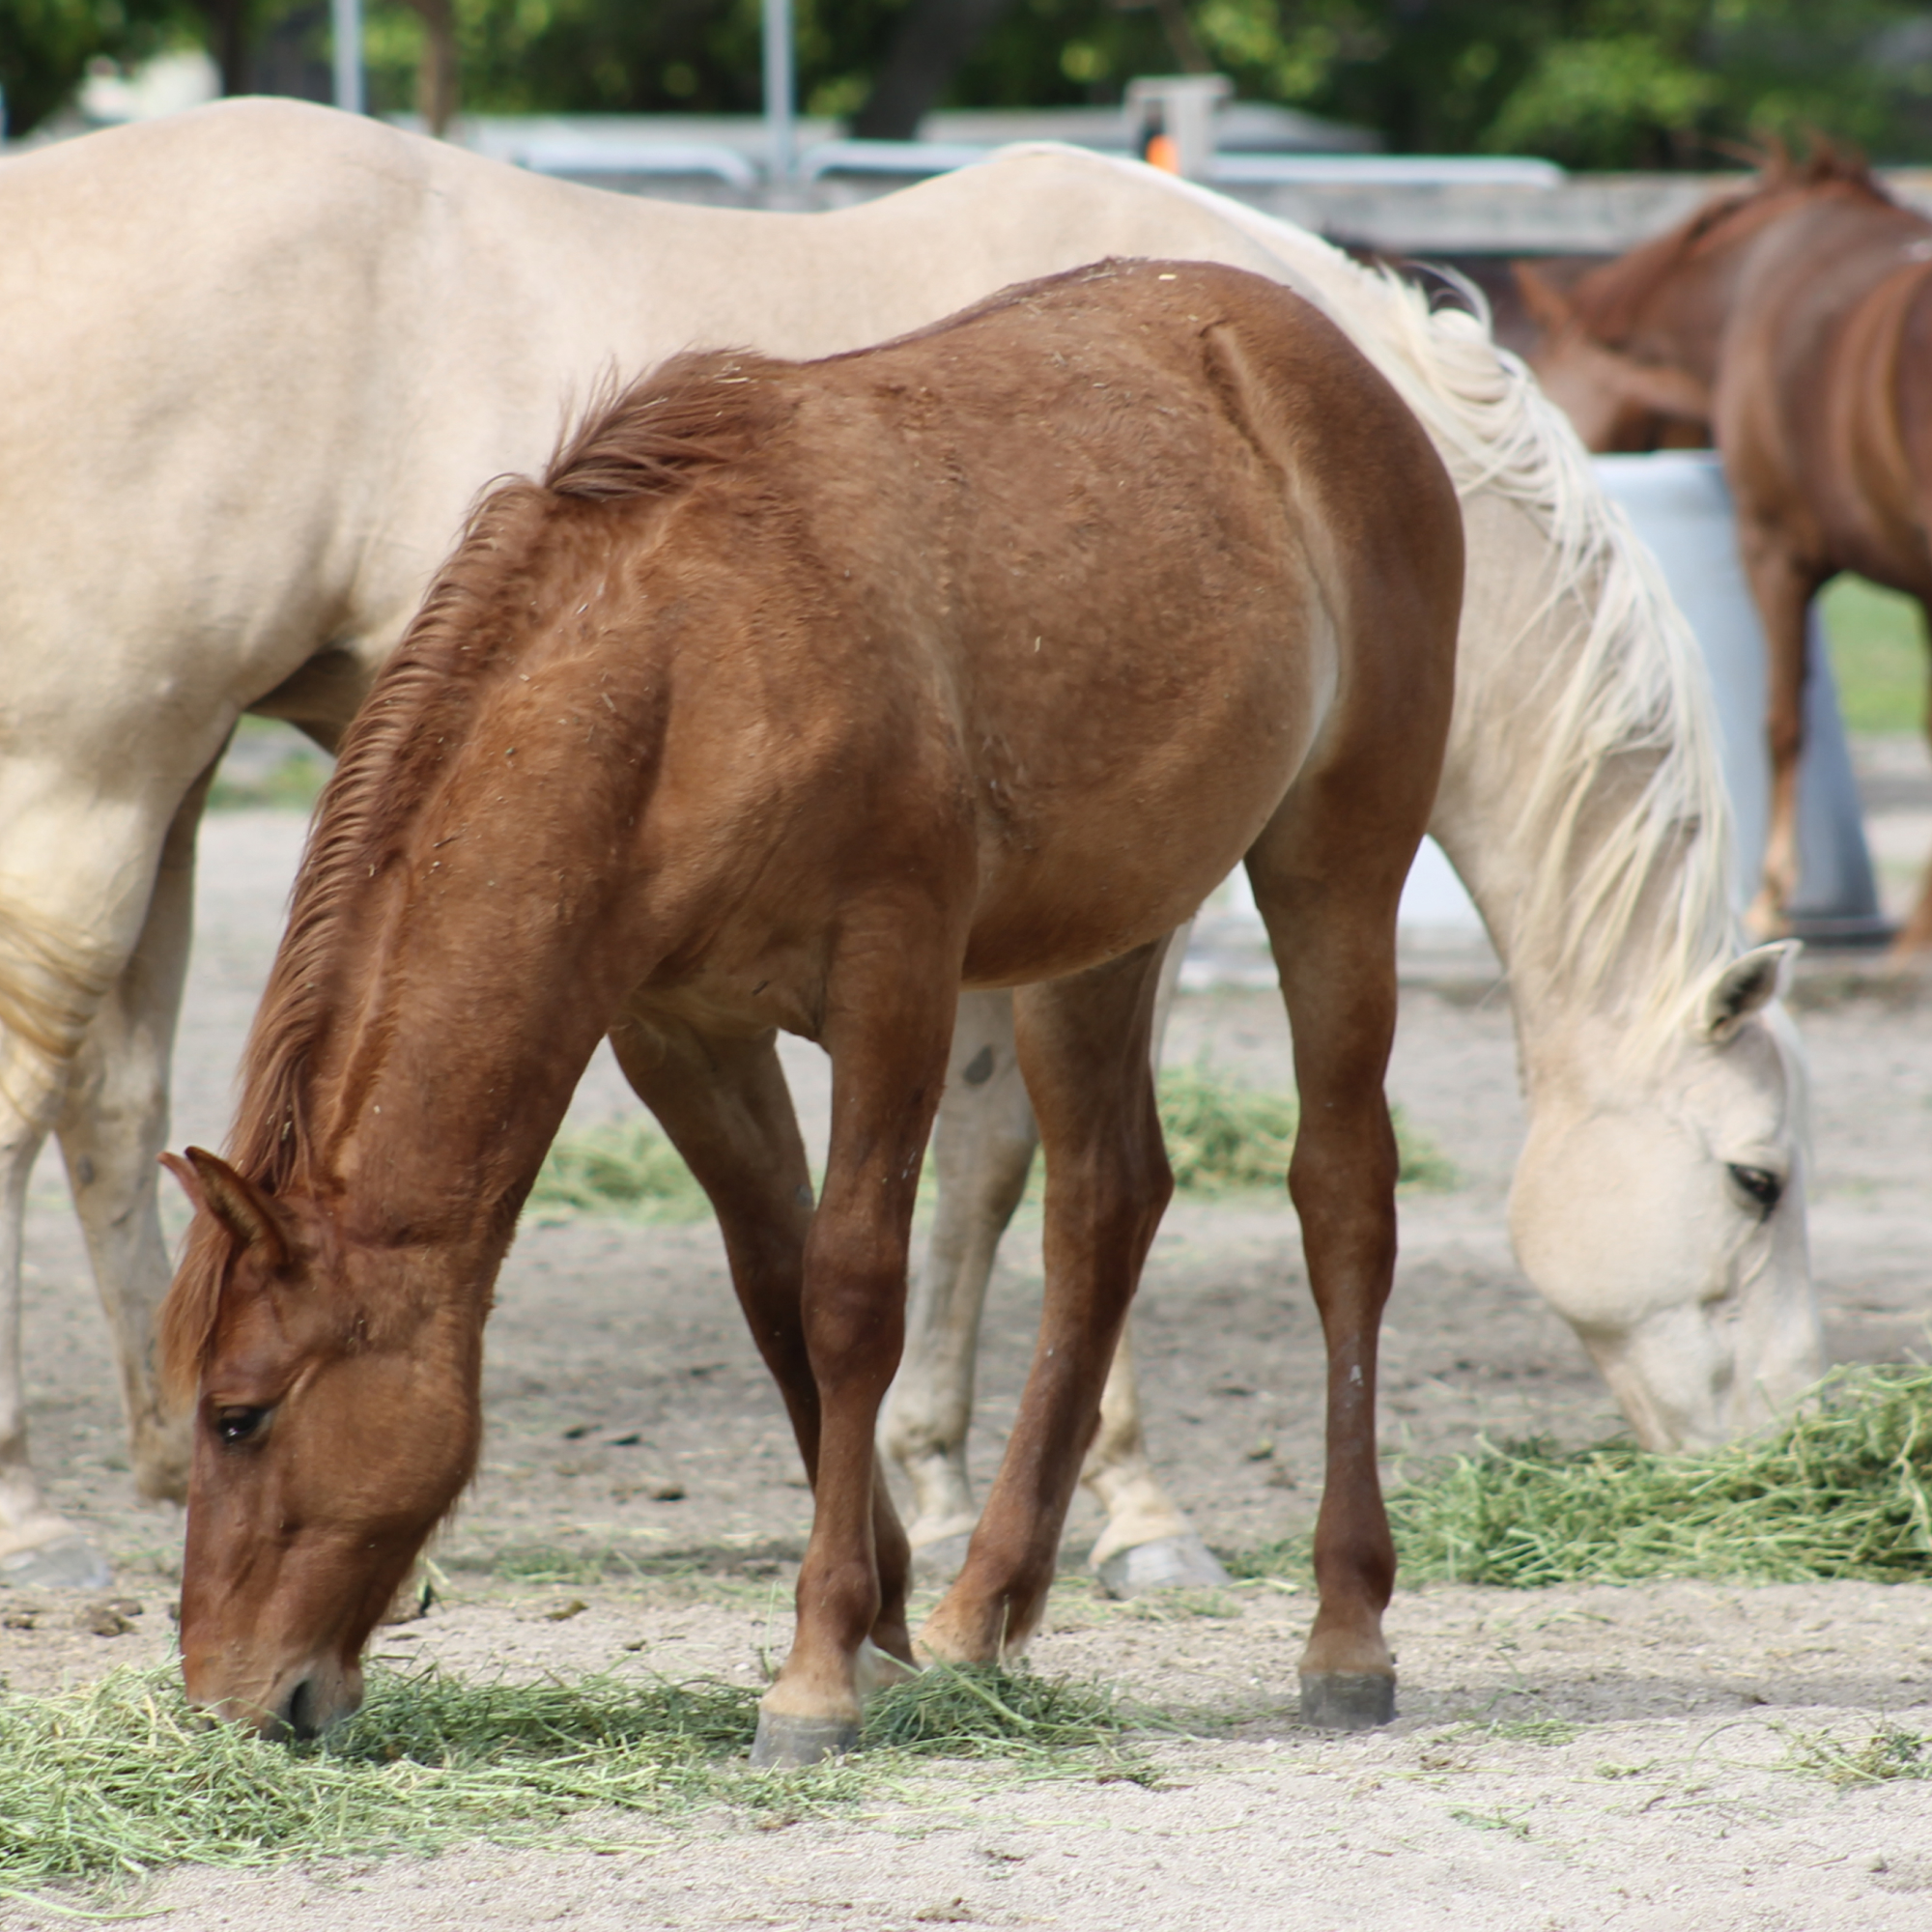 SFSPCA works tirelessly for abused horses and livestock